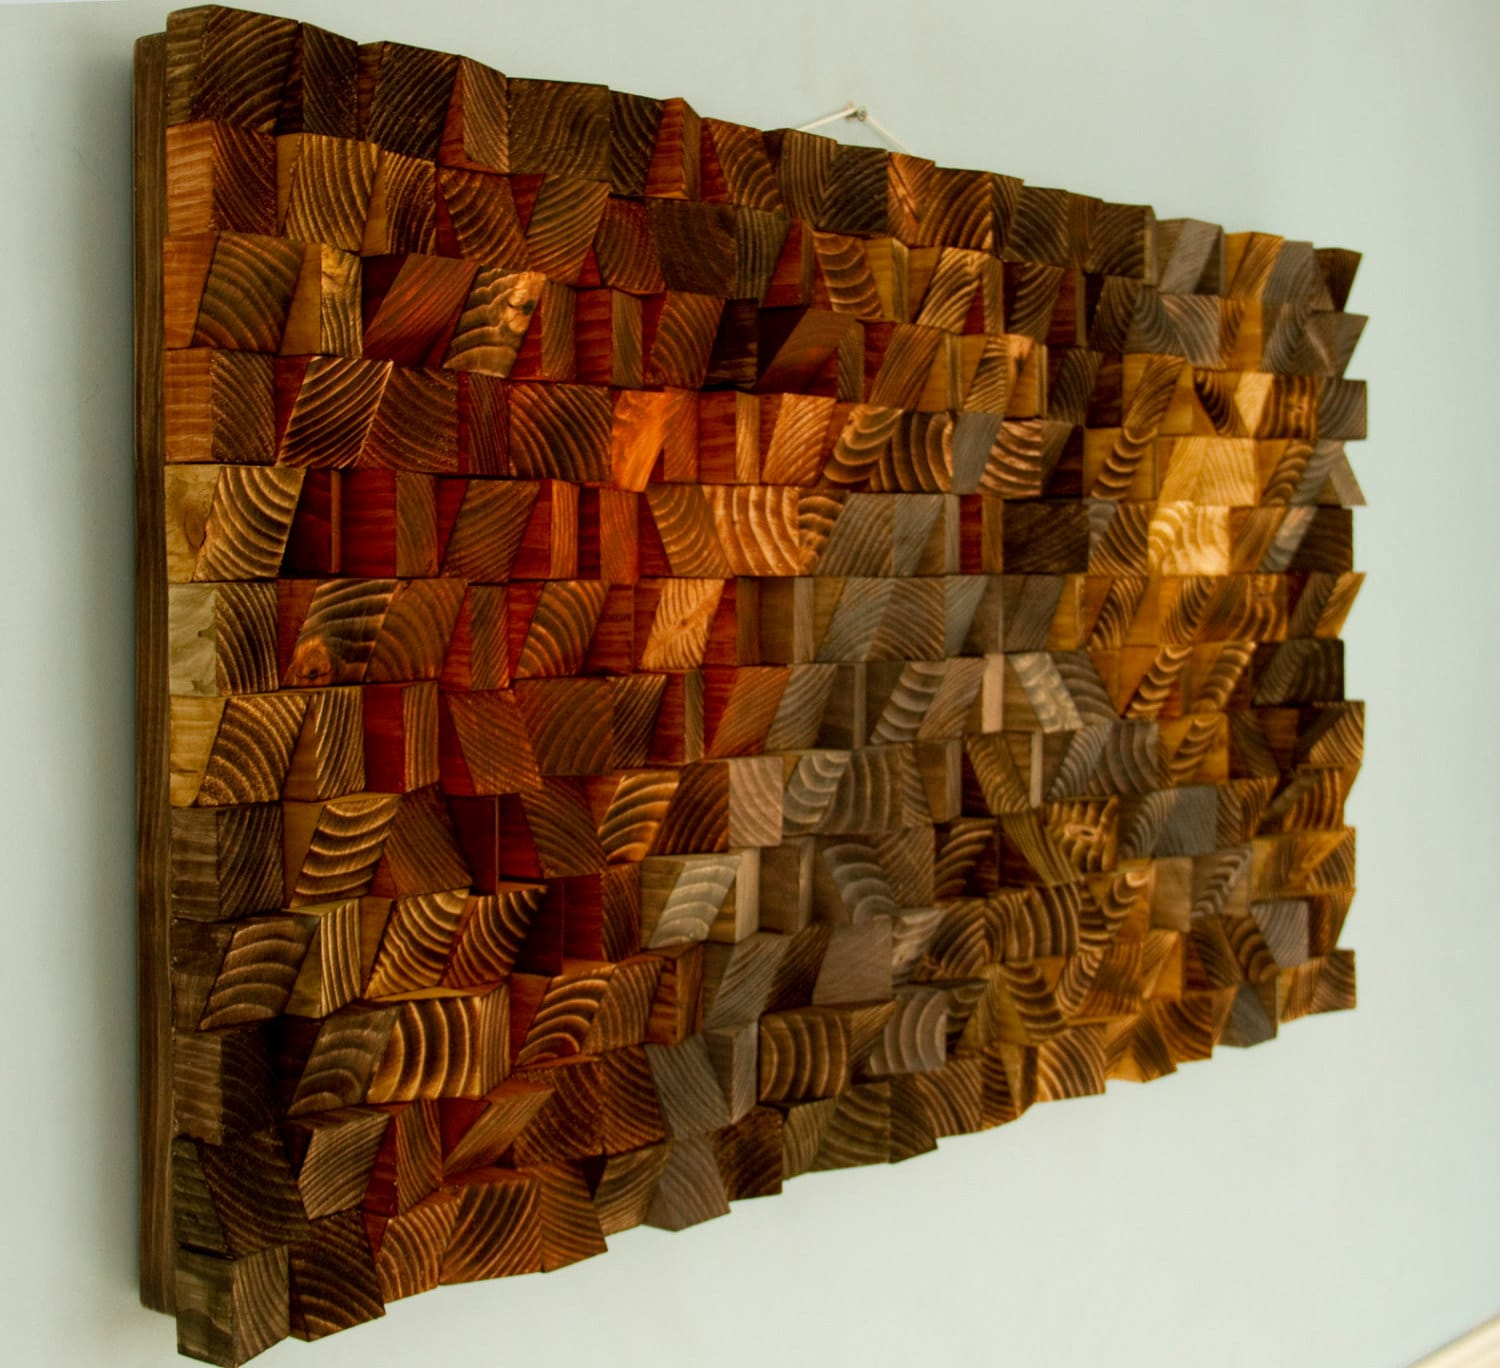 Wall sculpture art for sale 2 wall decal for Wall art for sale